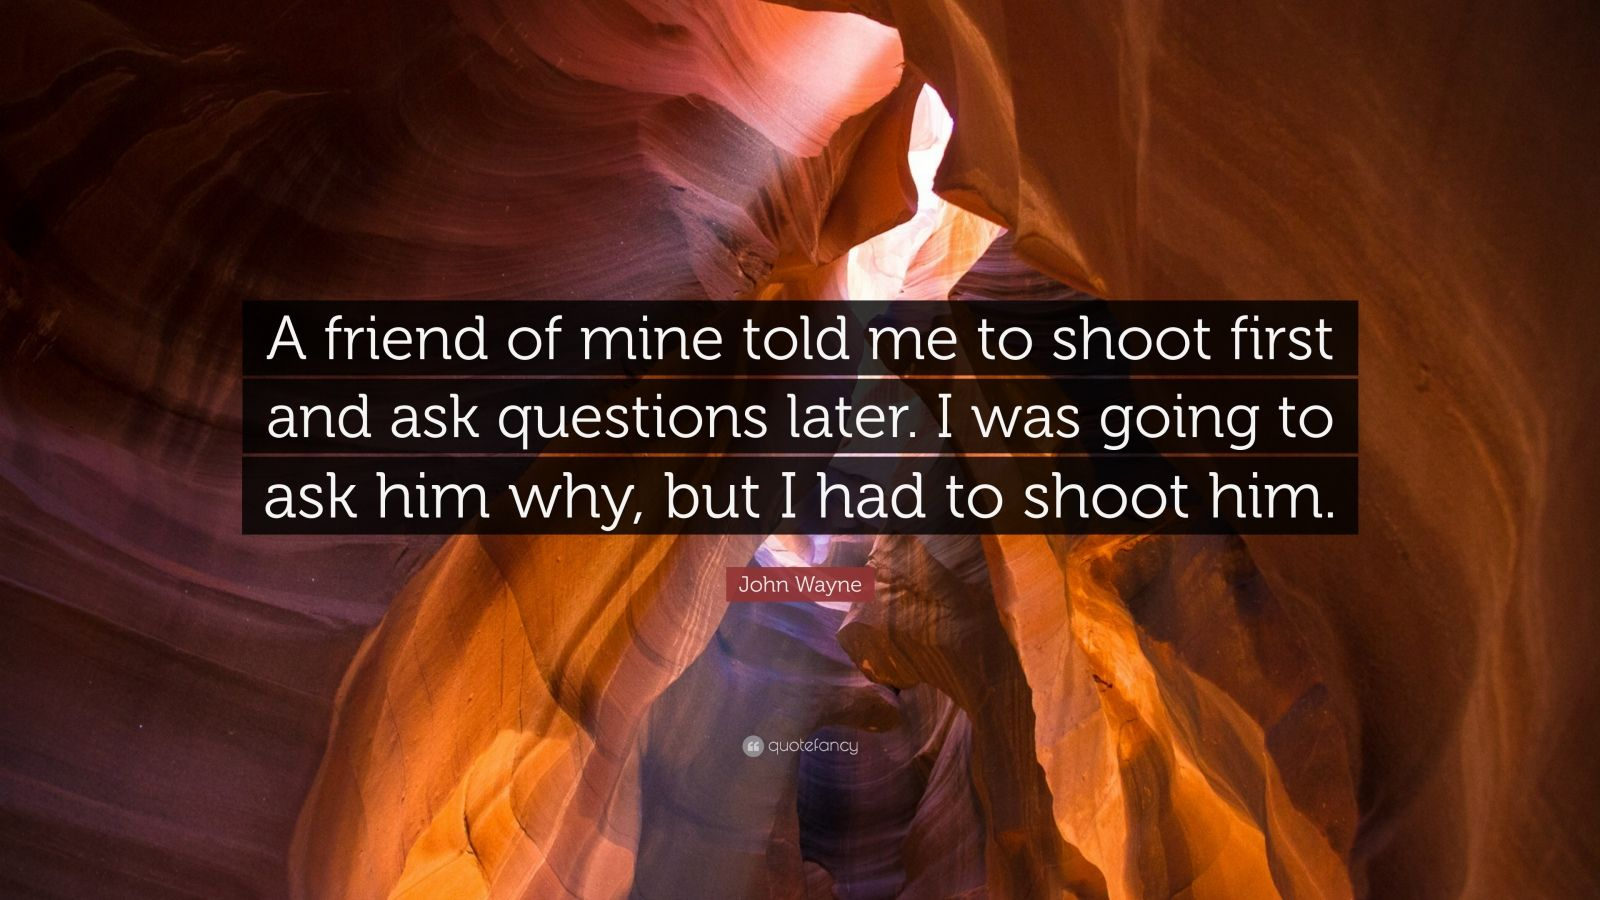 """John Wayne Quote: """"A friend of mine told me to shoot first and ask questions later. I was going to ask him why, but I had to shoot him."""""""